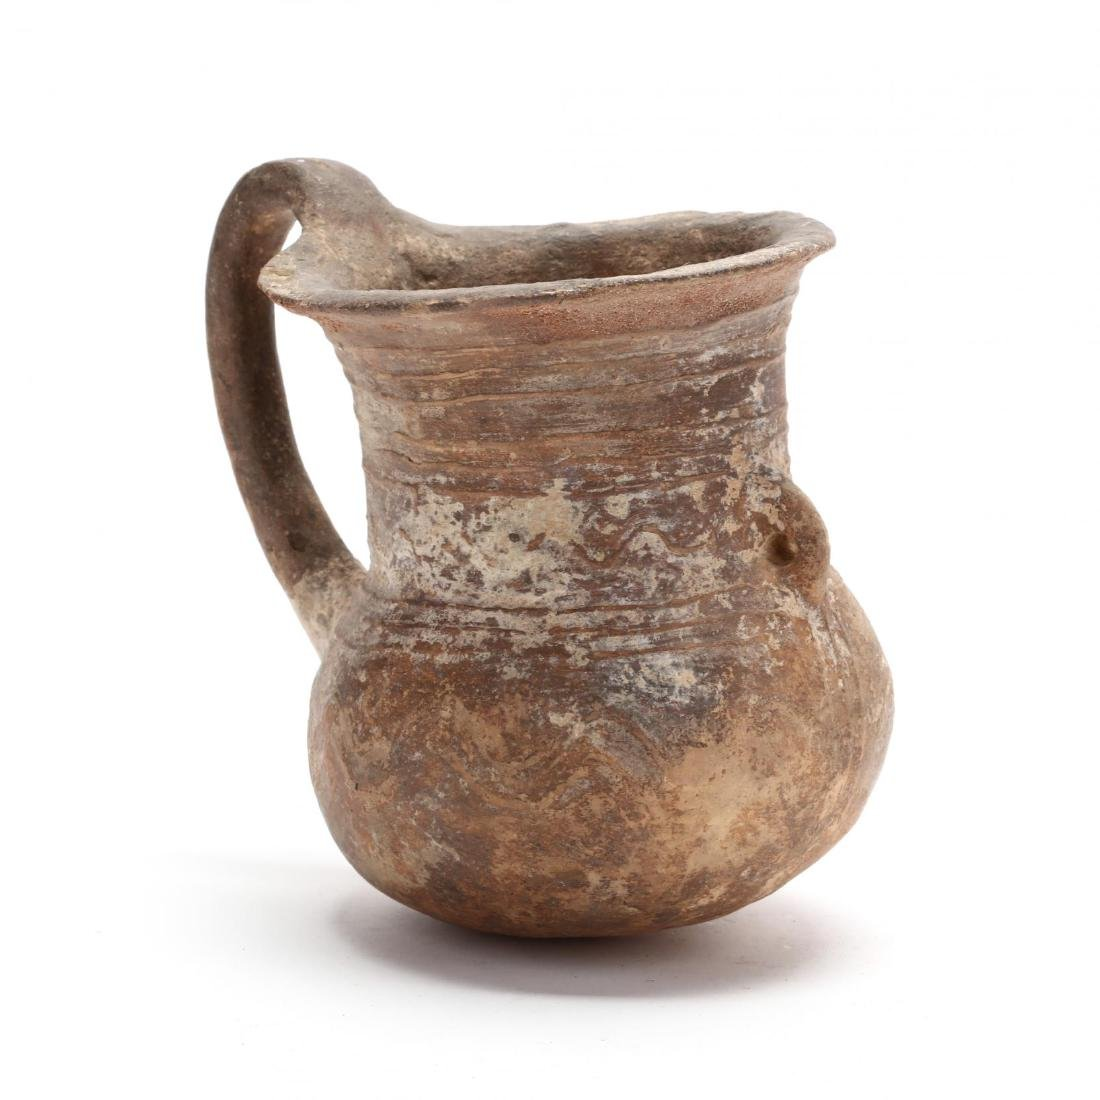 Cypriot Late Bronze Age Wide Mouth Vessel